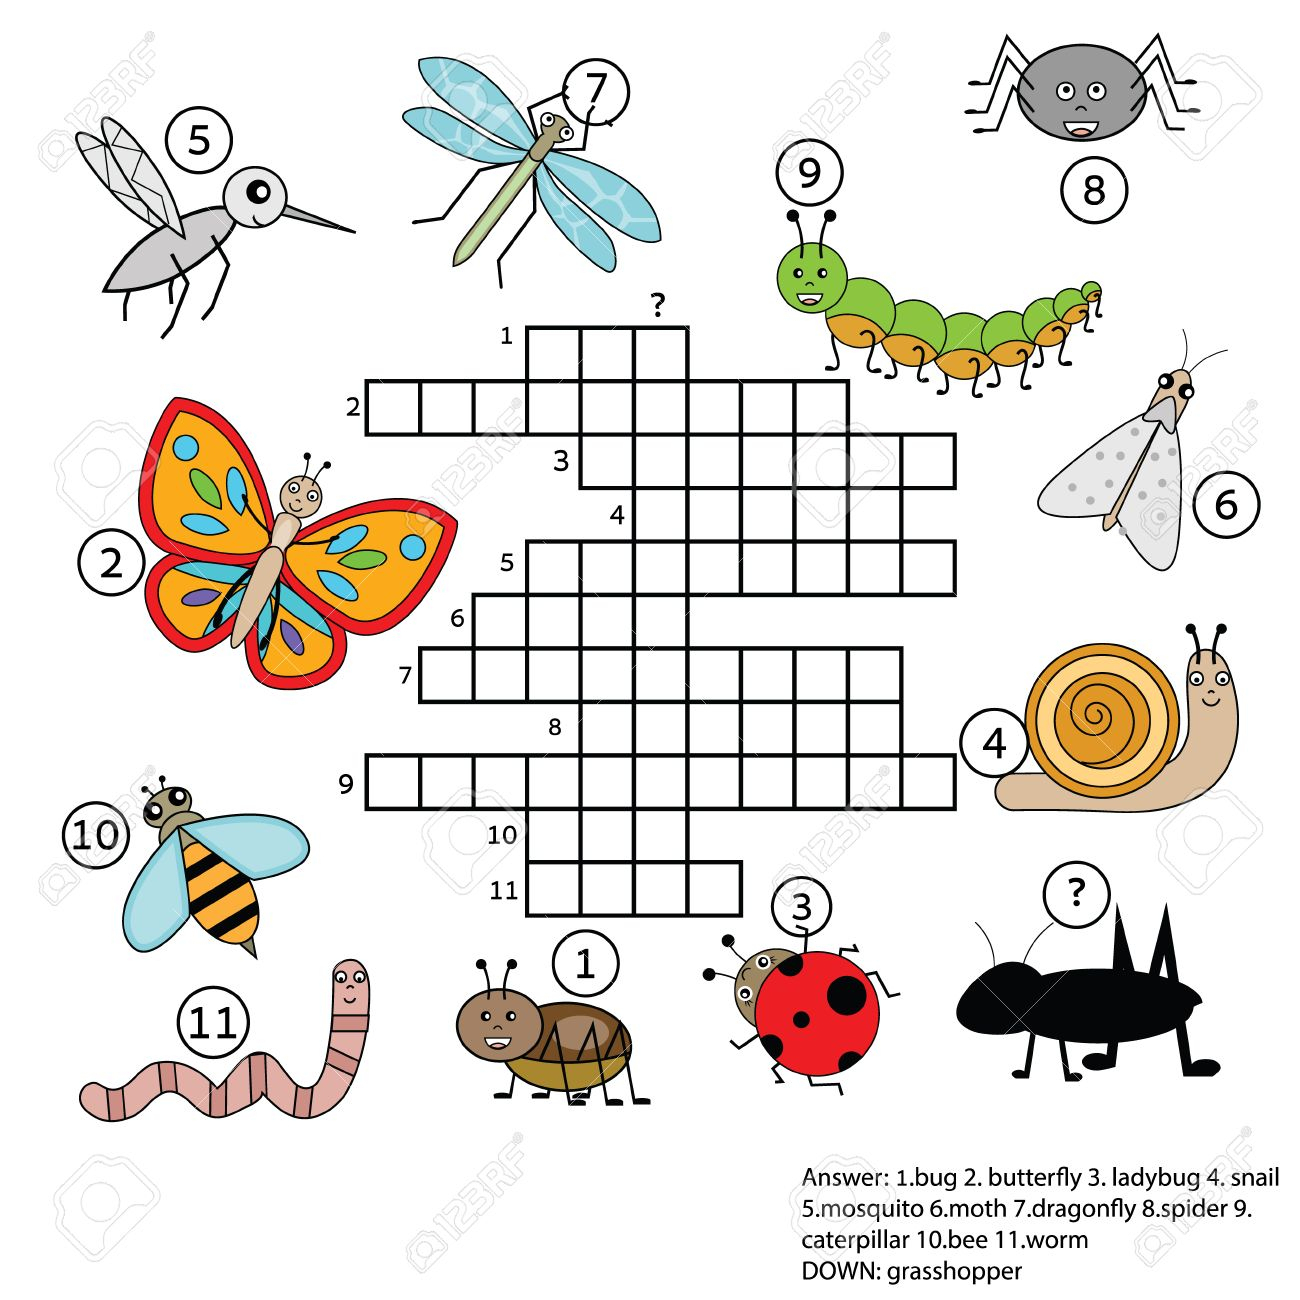 Crossword Educational Children Game With Answer. Learning Vocabulary - Insect Crossword Puzzle Printable